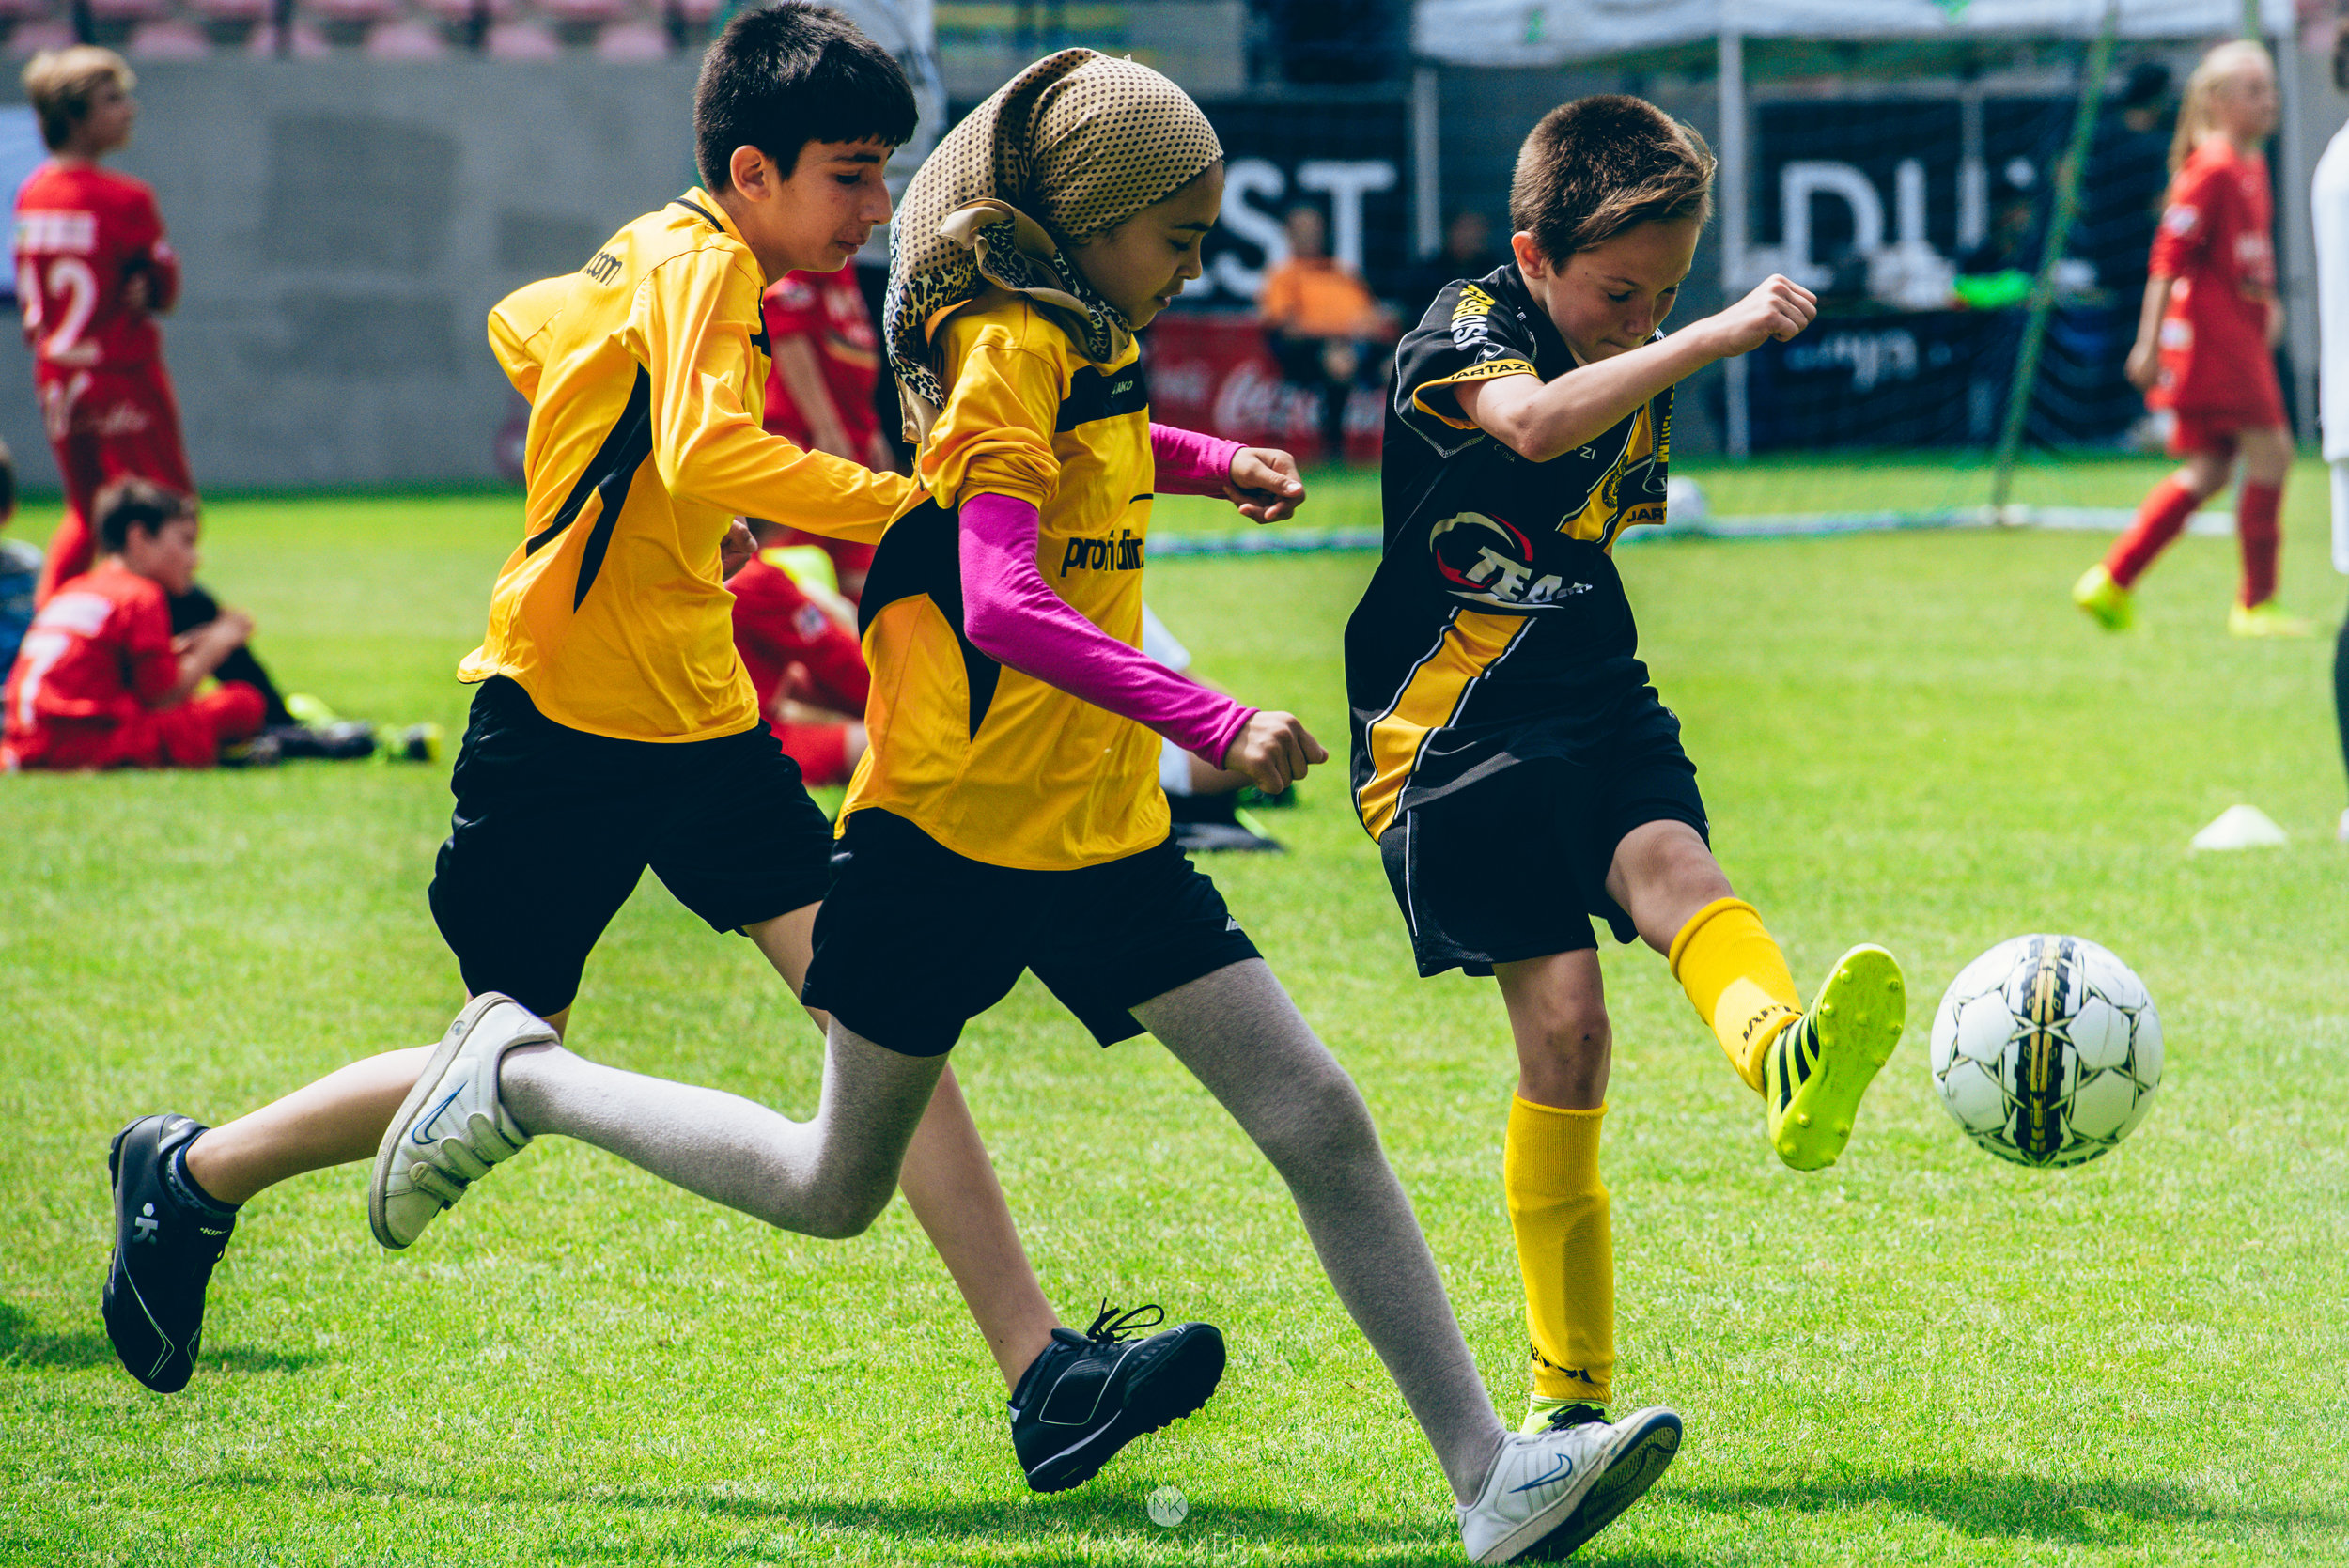 Boys and girls play alongside each other